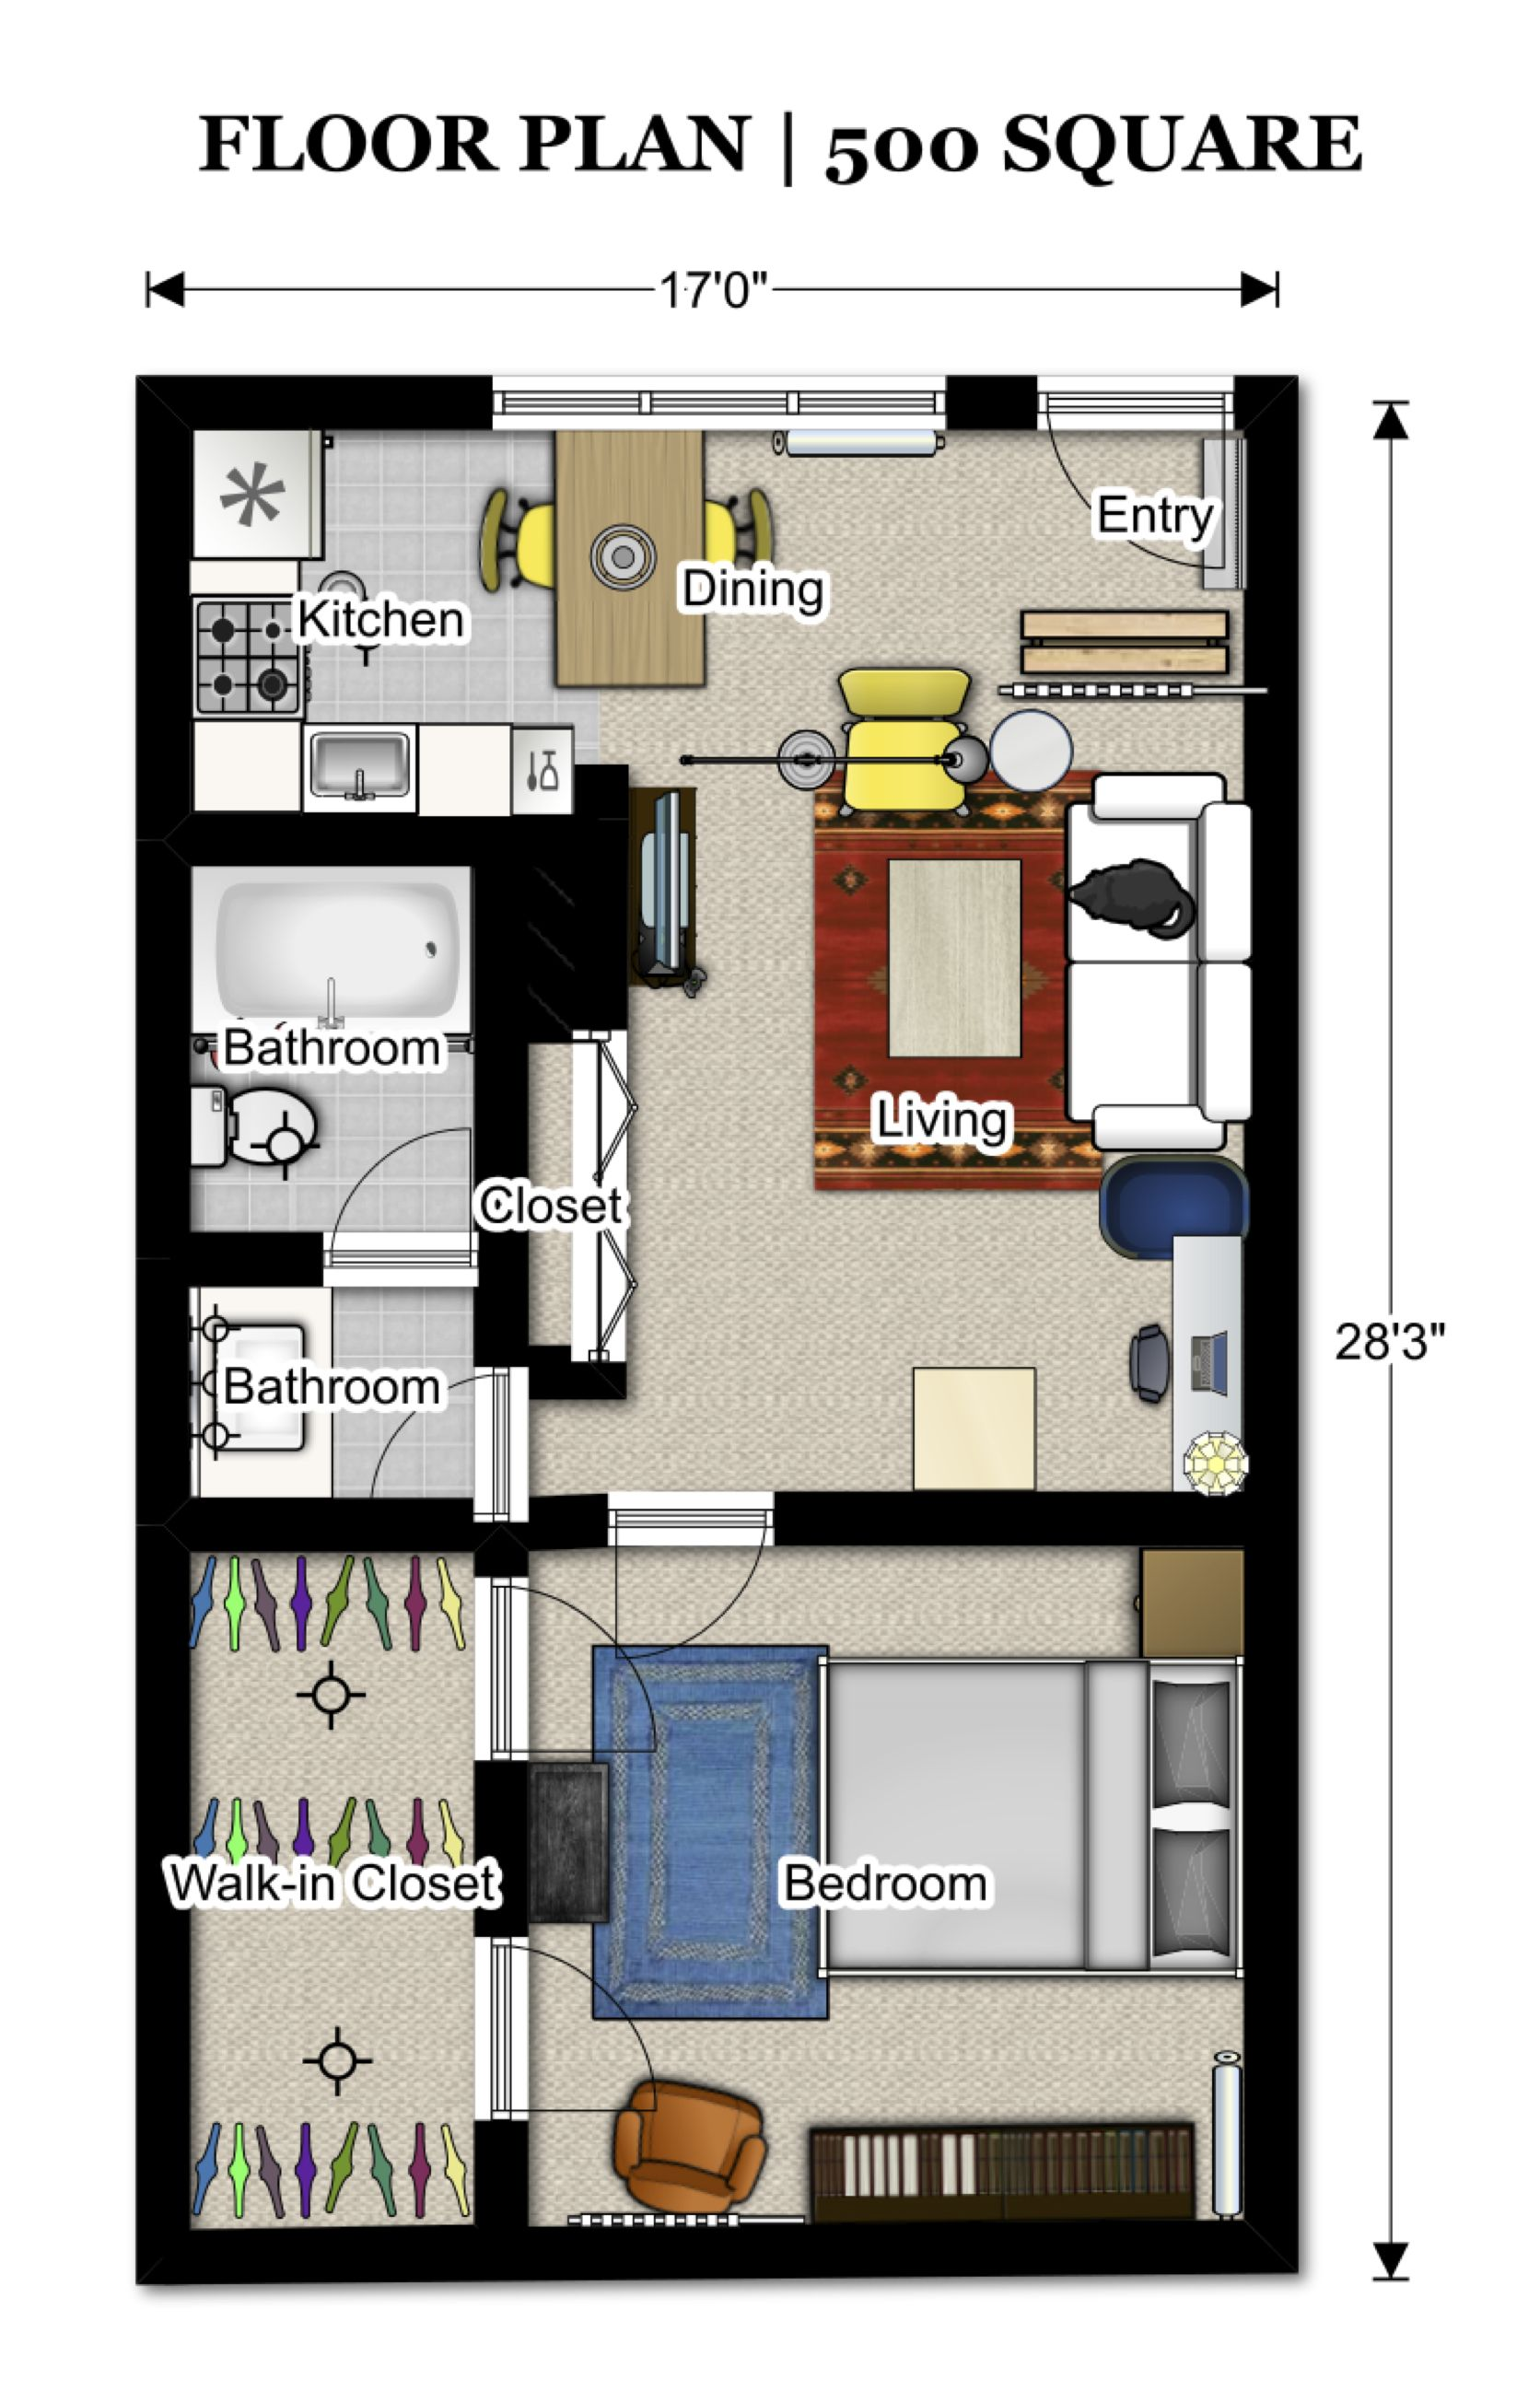 Floor plans 500 sq ft 352 3 pinterest apartment for Turn floor plan into 3d model